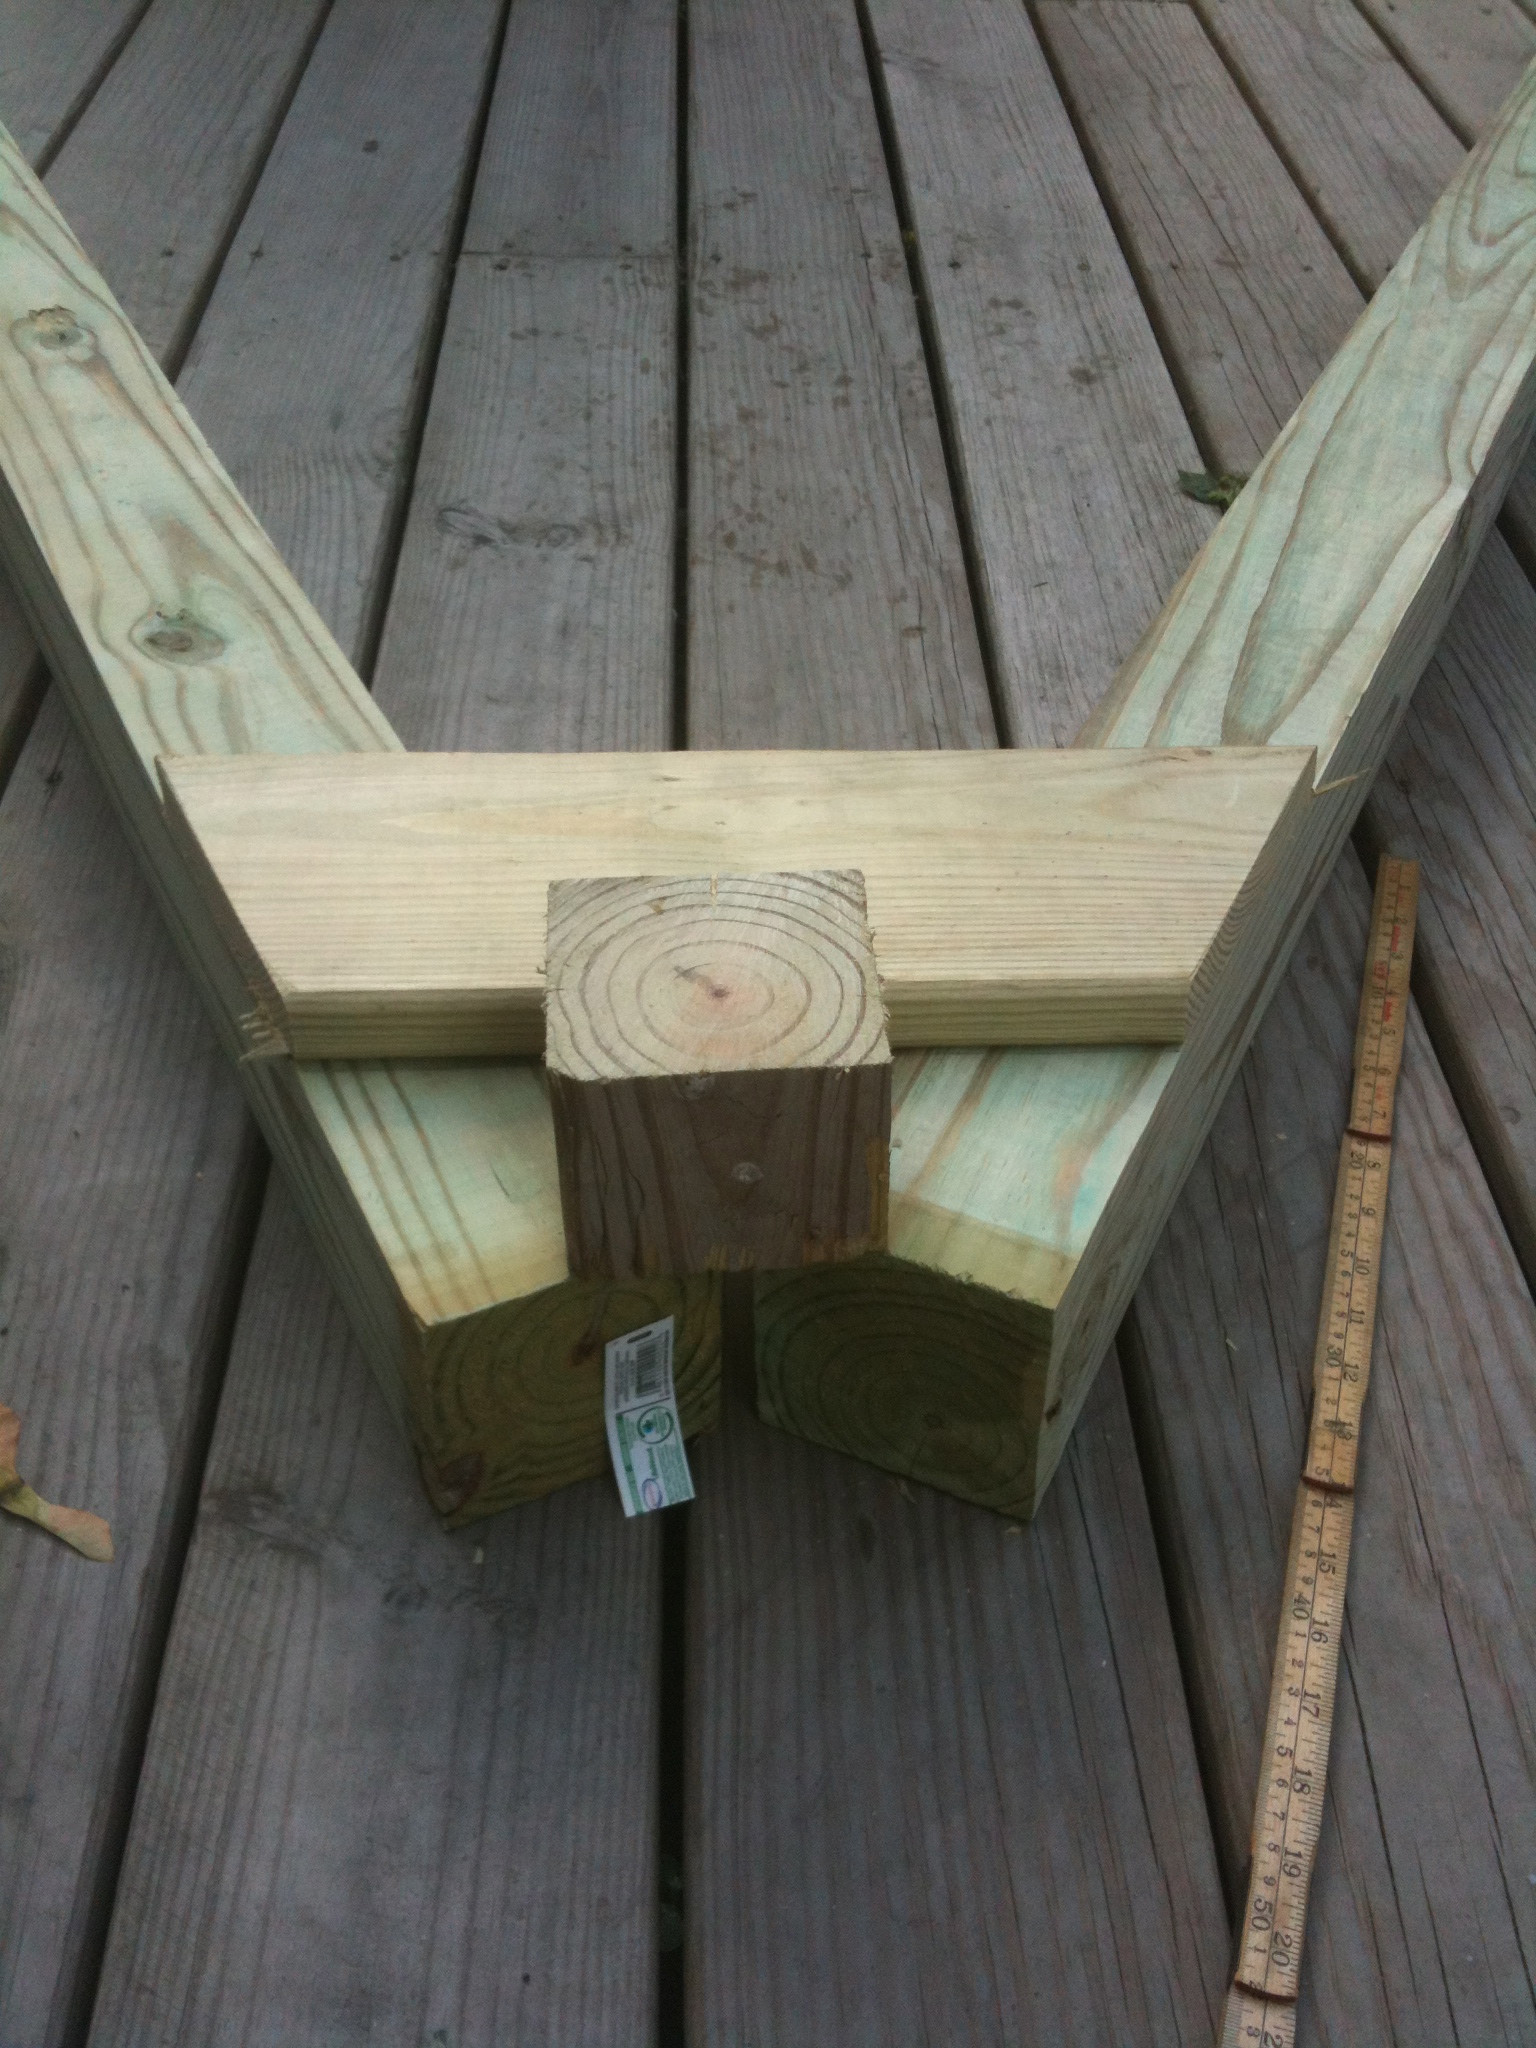 Best ideas about DIY Swing Frame . Save or Pin woodworking Plans for building a simple swing set out of Now.